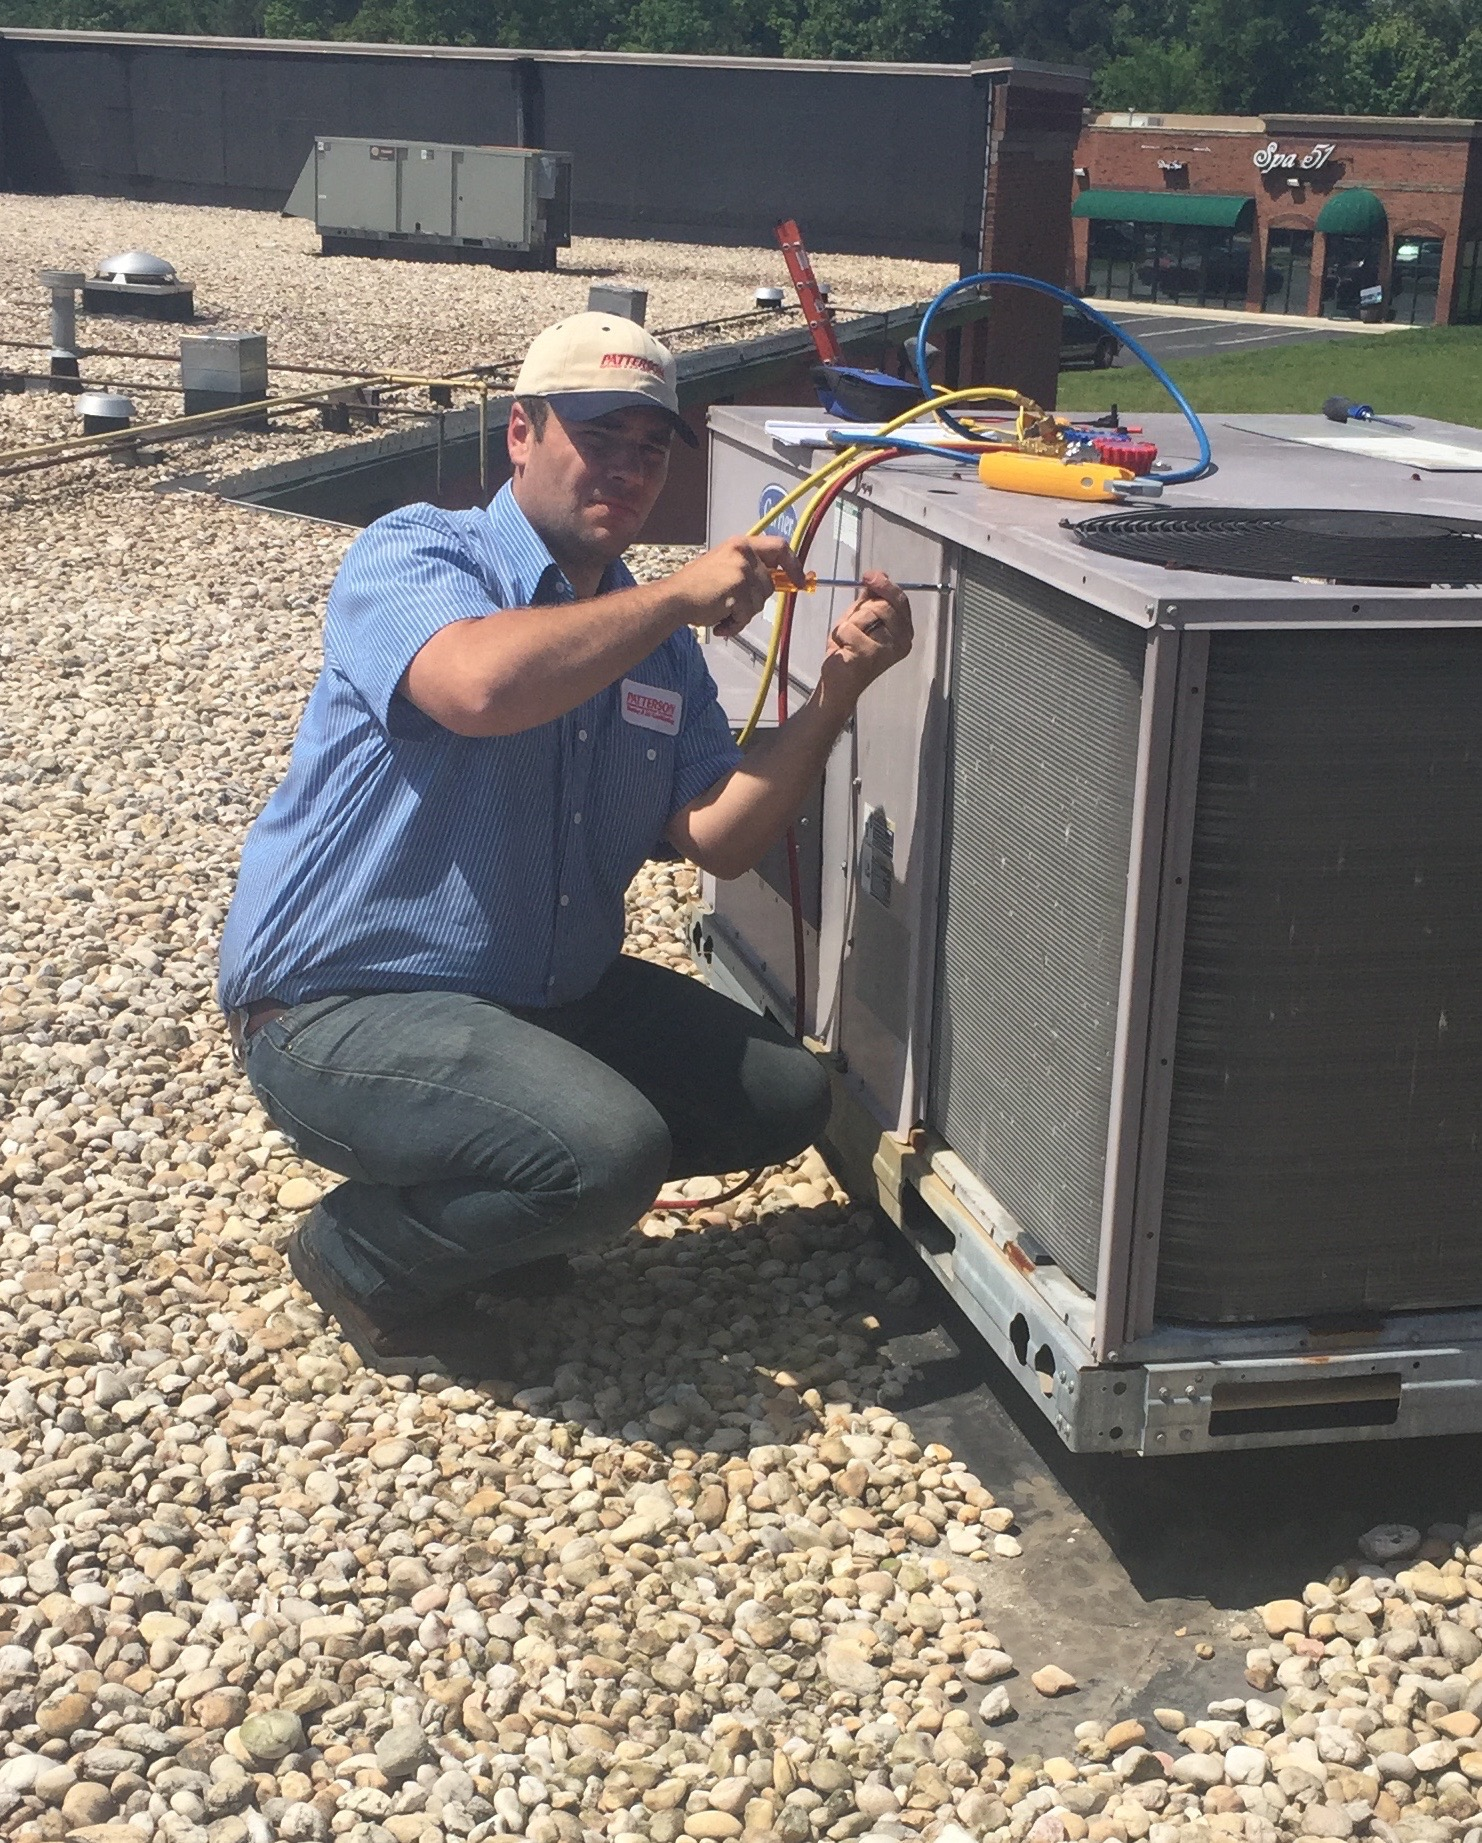 Commercial air conditioning repair and installation technician in Charlotte NC